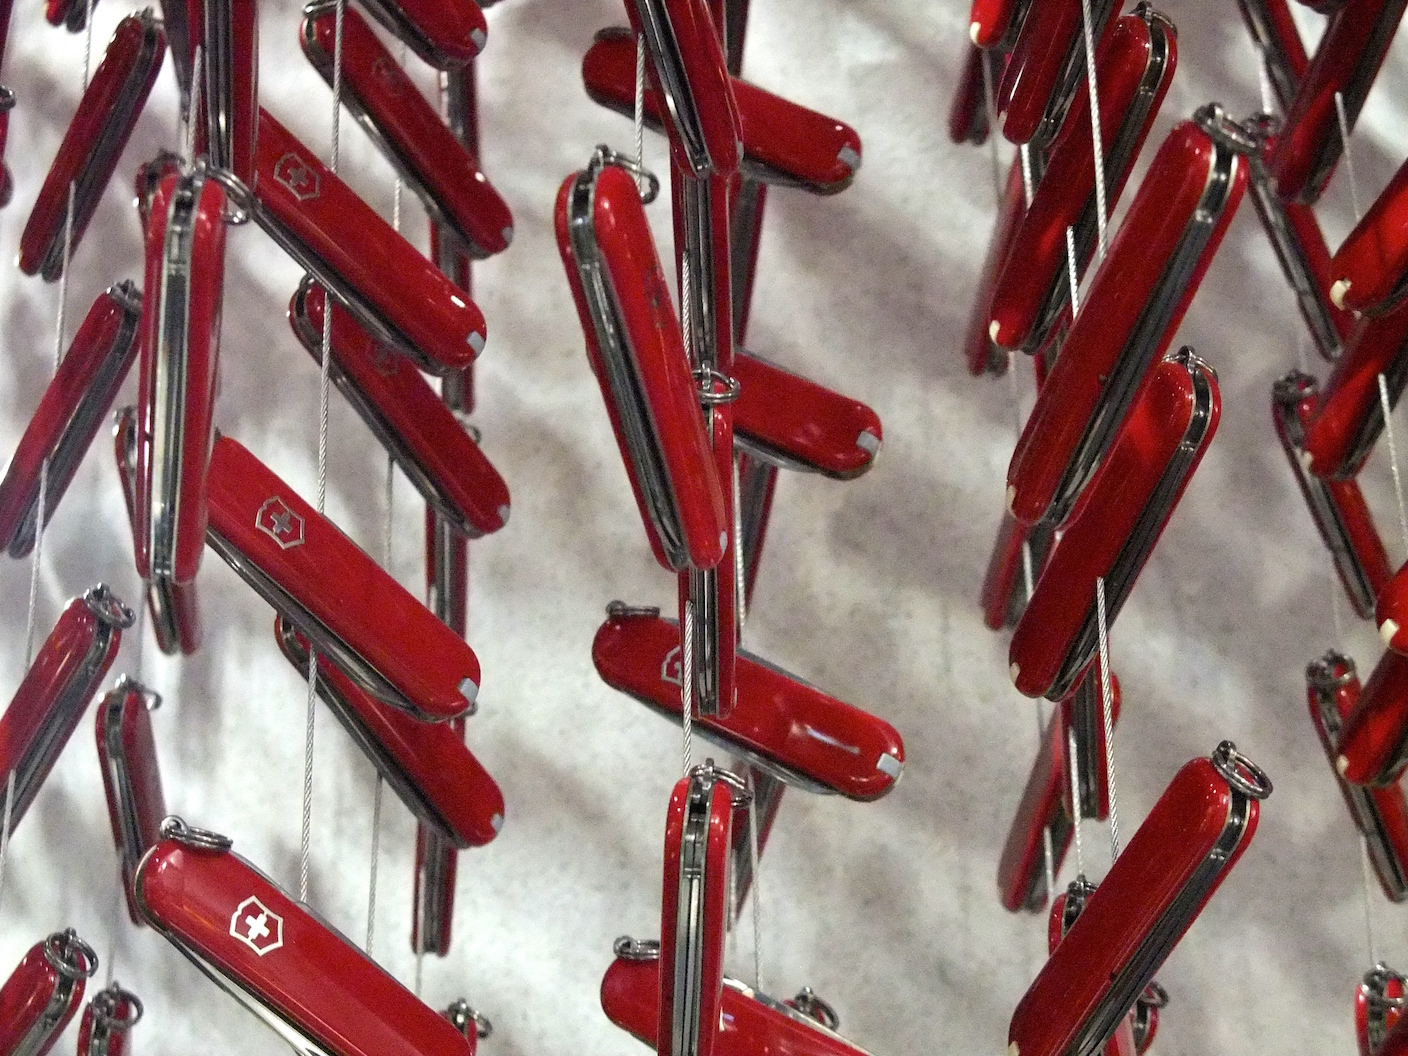 Hanging Swiss army knives in the Victorinox store